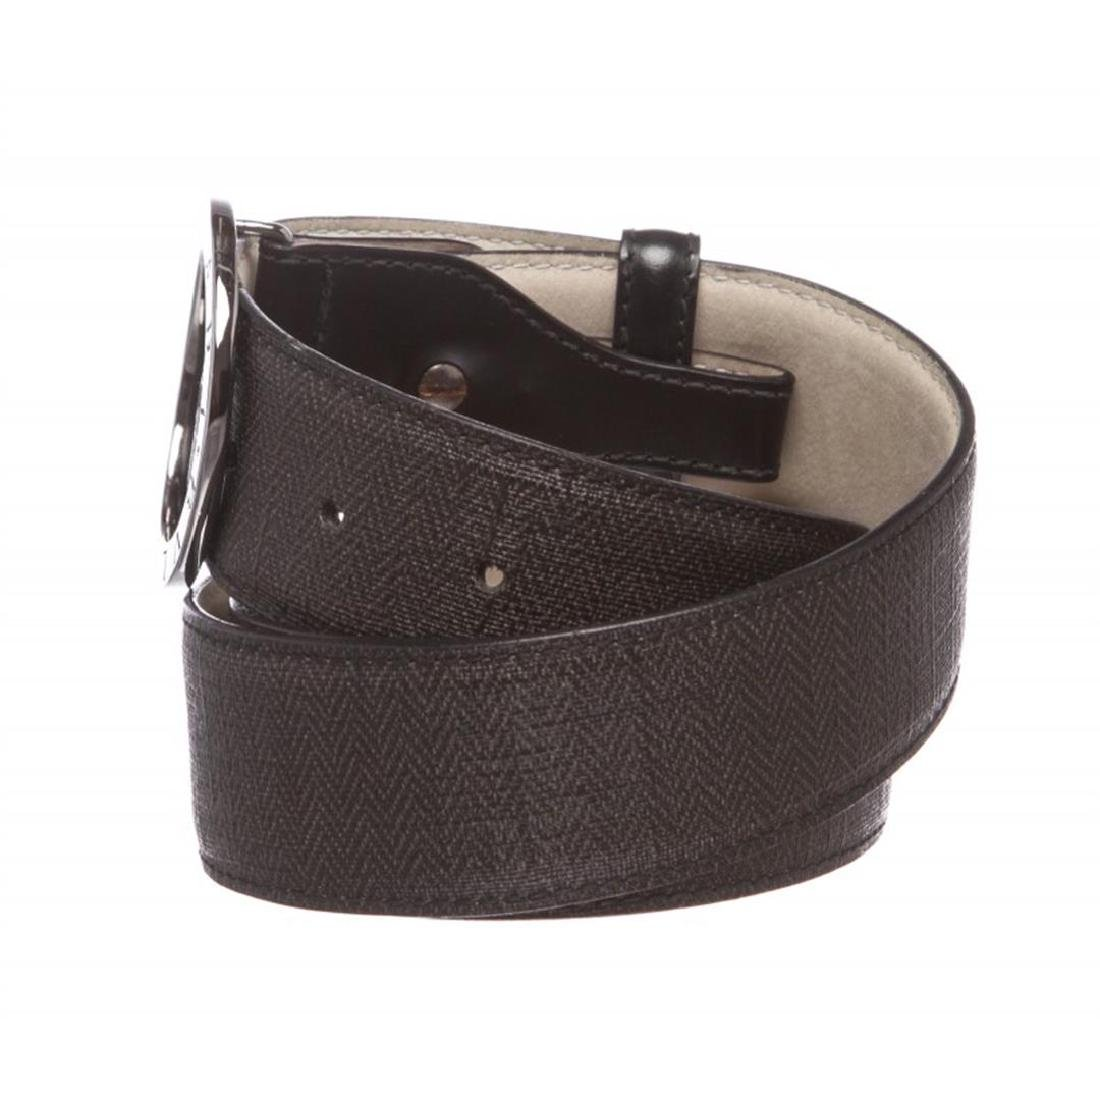 Bvlgari Black Gray Coated Canvas Leather Belt - 4